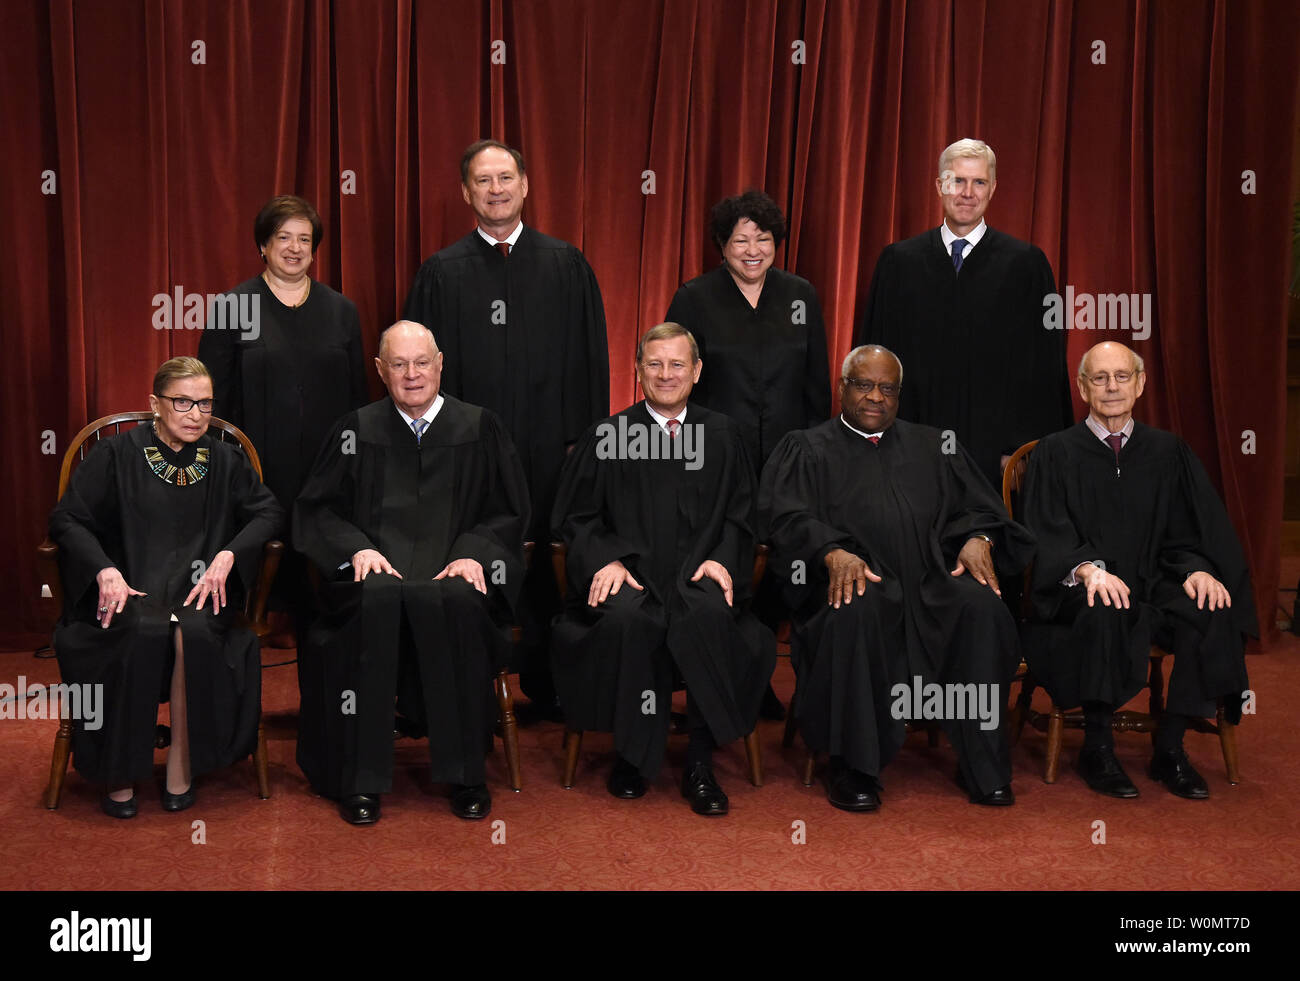 Members of the U.S. Supreme Court pose for a group photograph at the Supreme Court building in Washington, DC on June 1 2017. Front row. Seated from left, Associate Justice Ruth Bader Ginsburg, Associate Justice Anthony M. Kennedy, Chief Justice of the United States John G. Roberts, Associate Justice Clarence Thomas, and Associate Justice Stephen Breyer.  Standing behind from left, Associate Justice Elena Kagan, Associate Justice Samuel Alito Jr., Associate Justice Sonia Sotomayor, and Associate Justice Neil Gorsuch.    Photo by Olivier Douliery/UPI - Stock Image